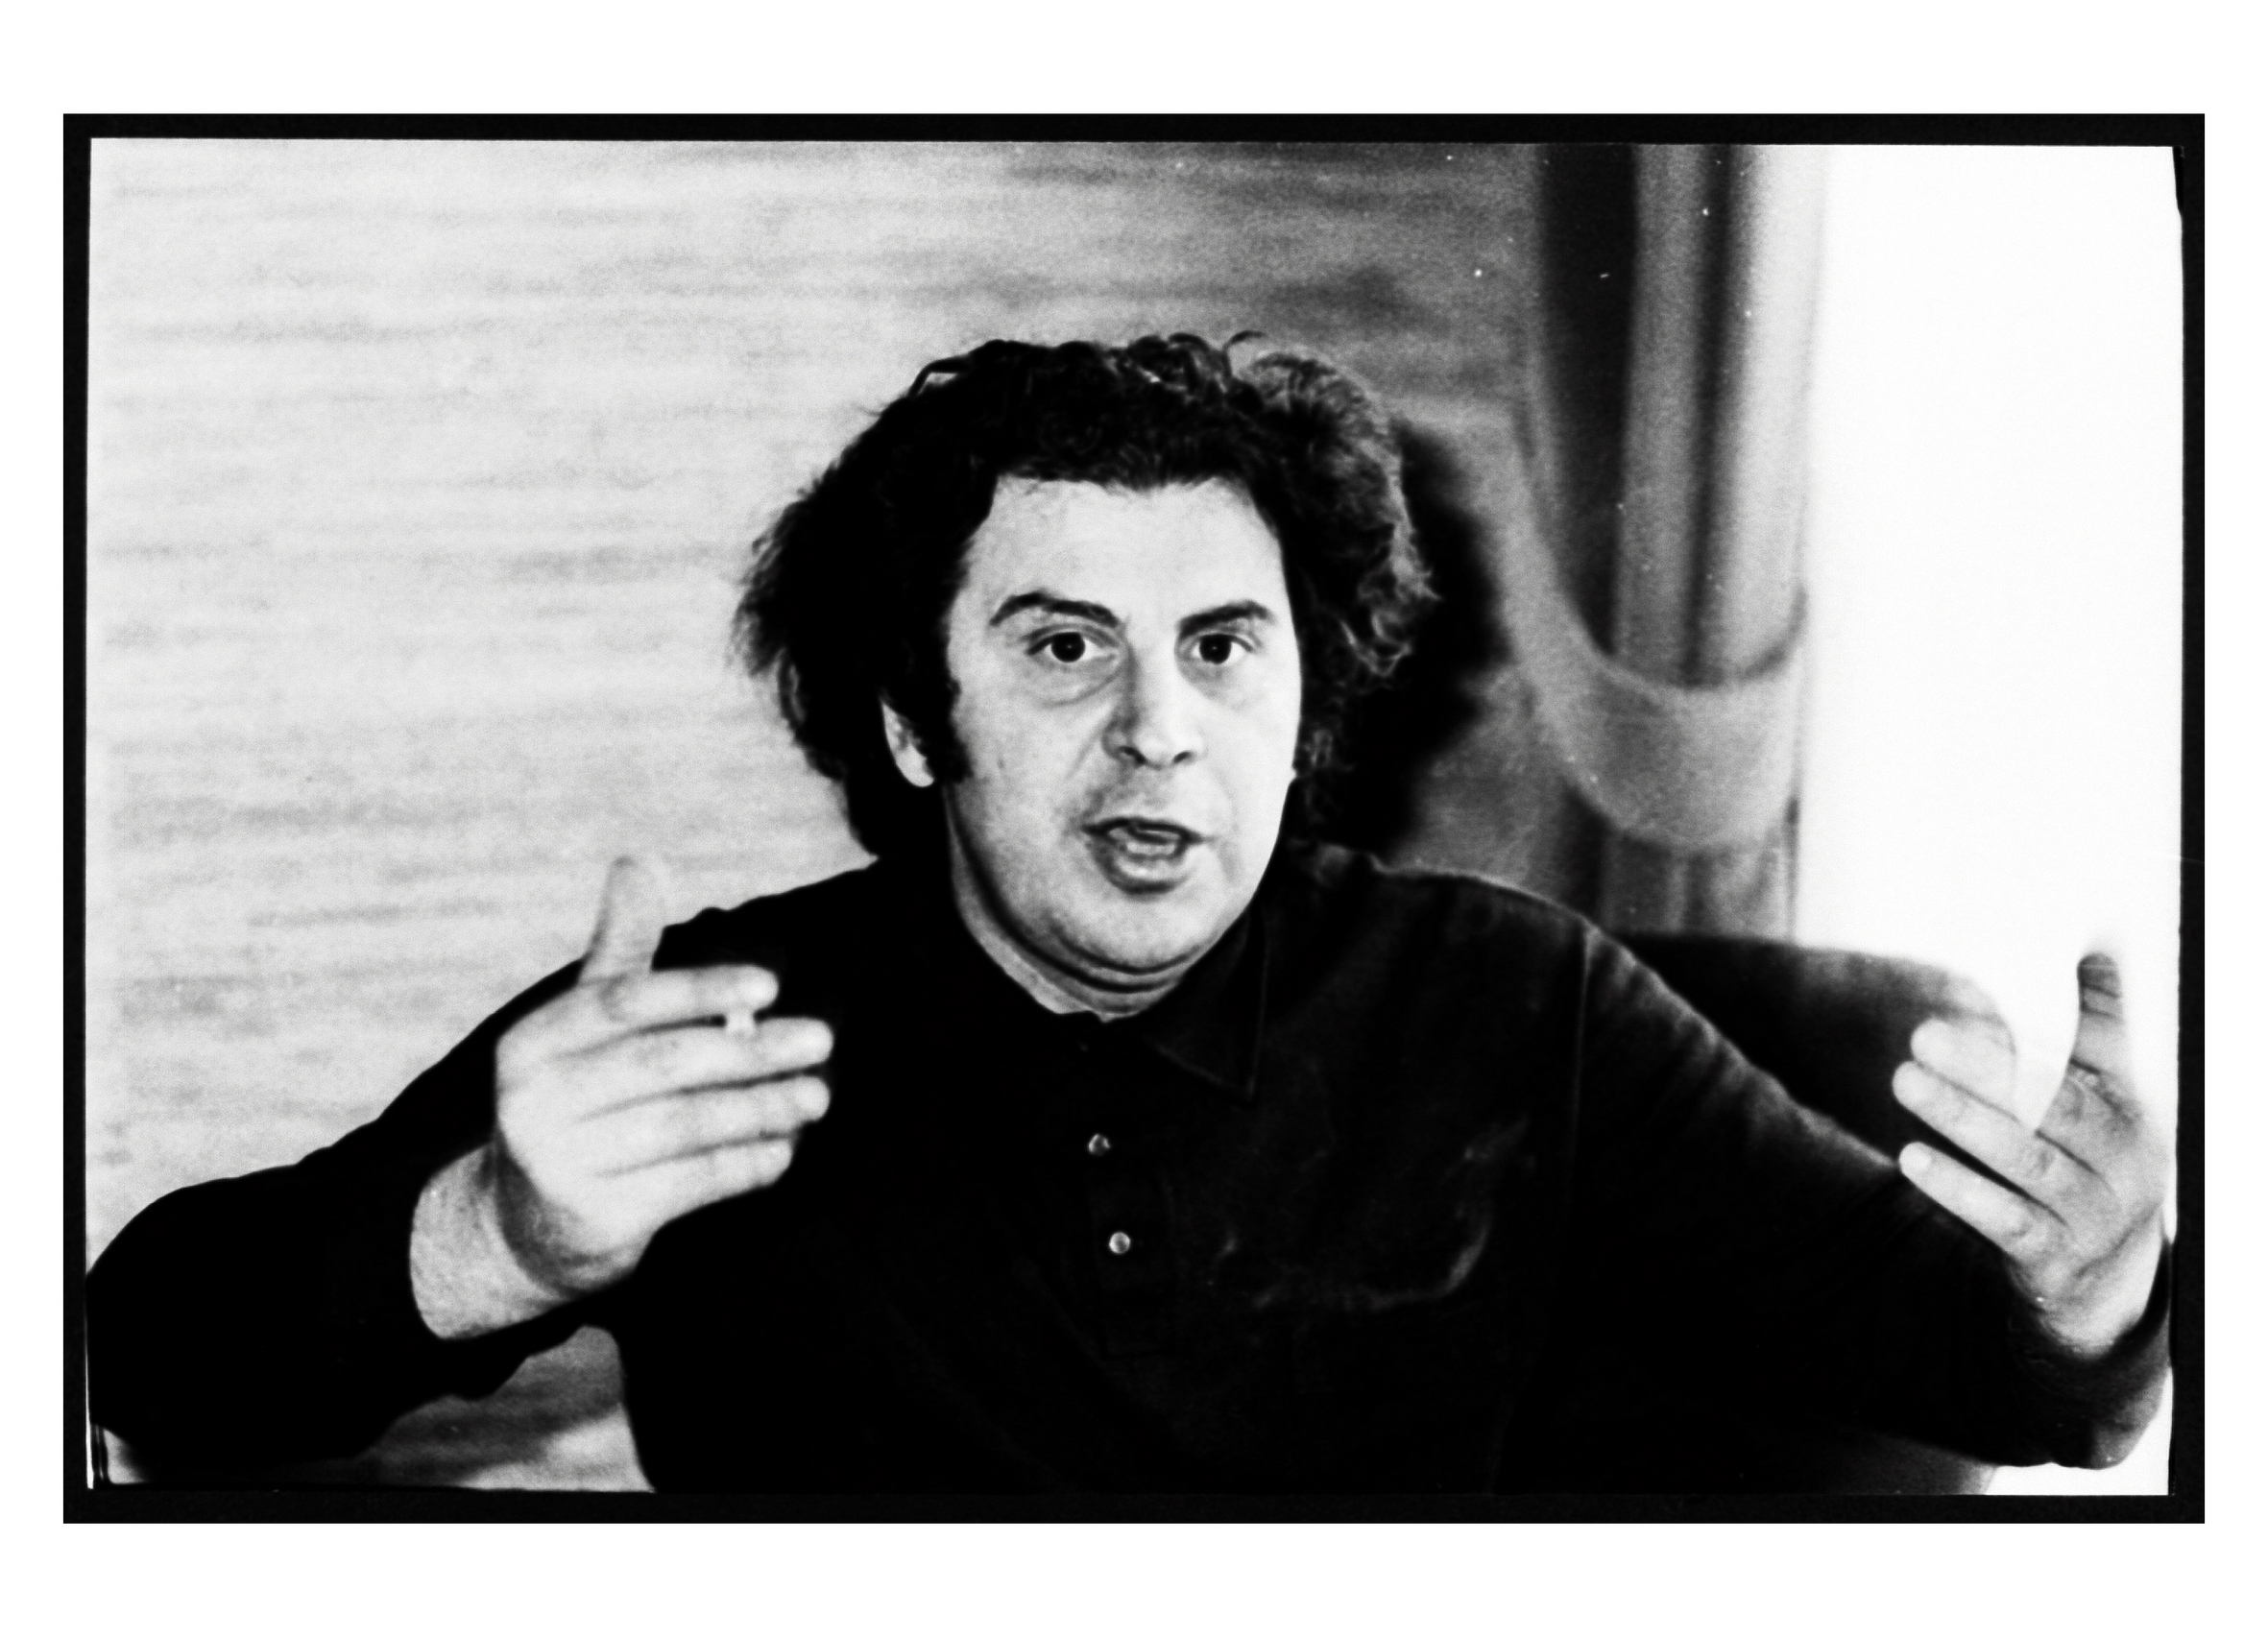 THEODORAKIS-photo2